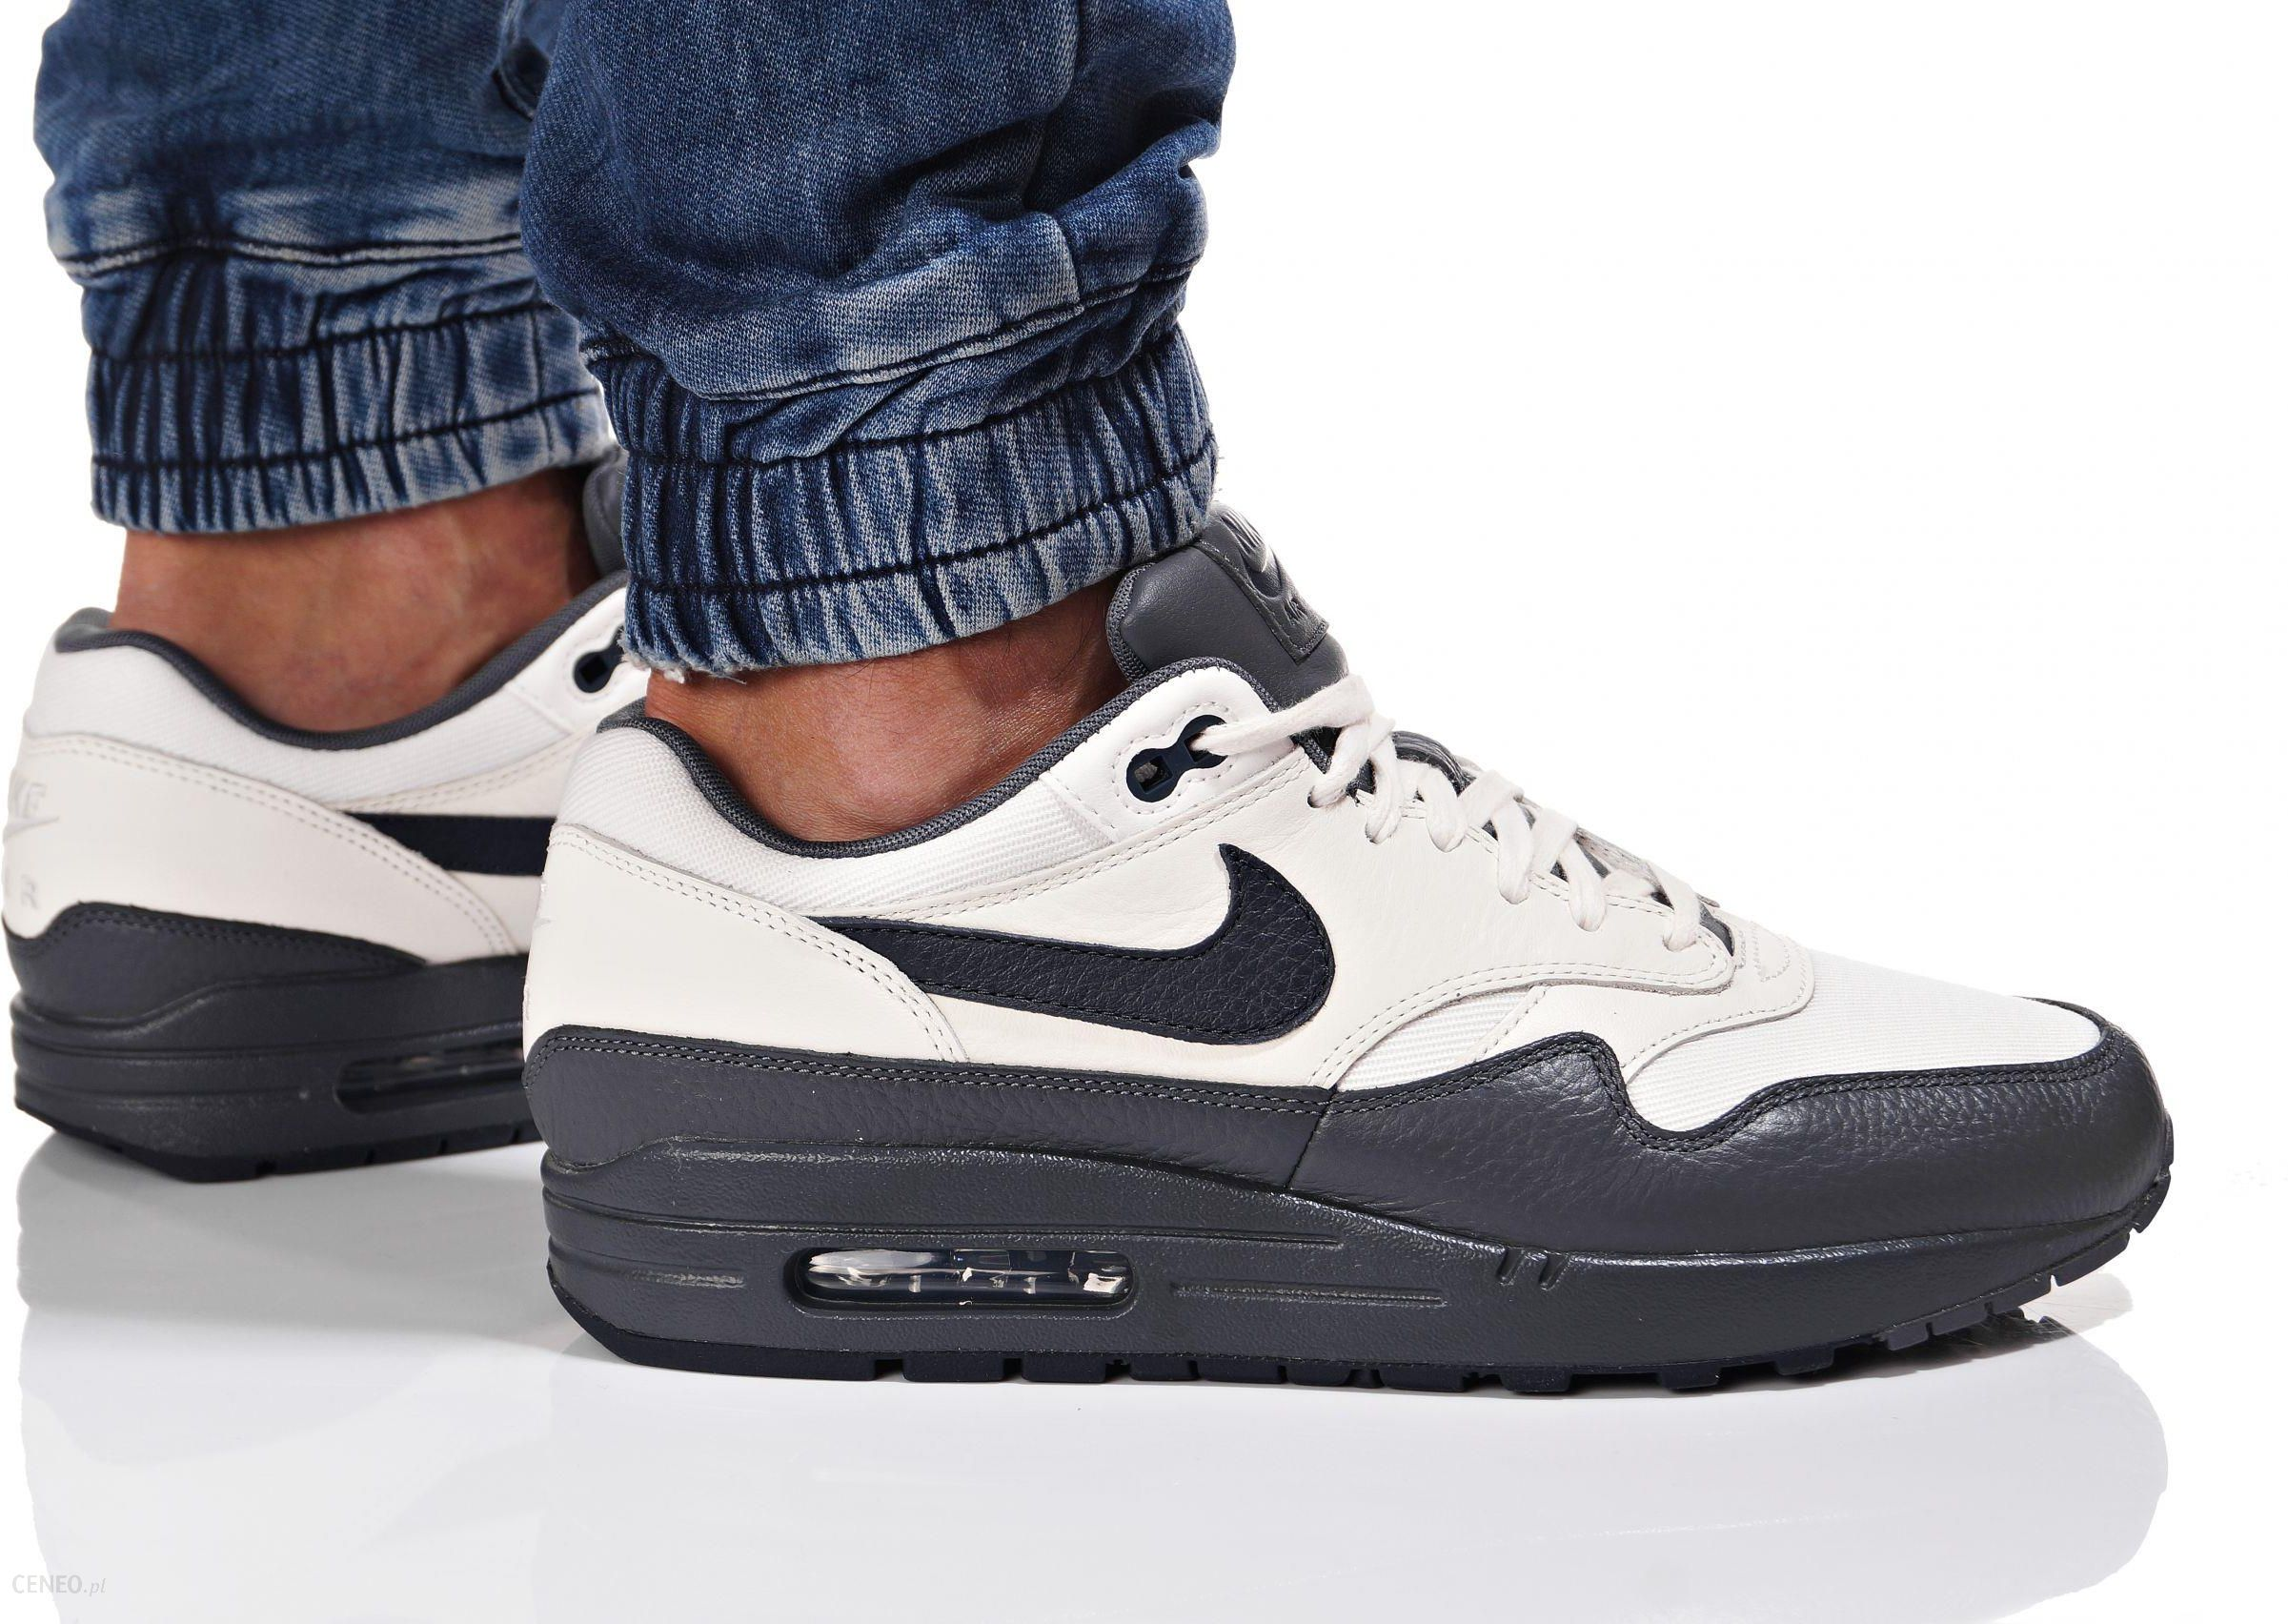 air max buty do czego